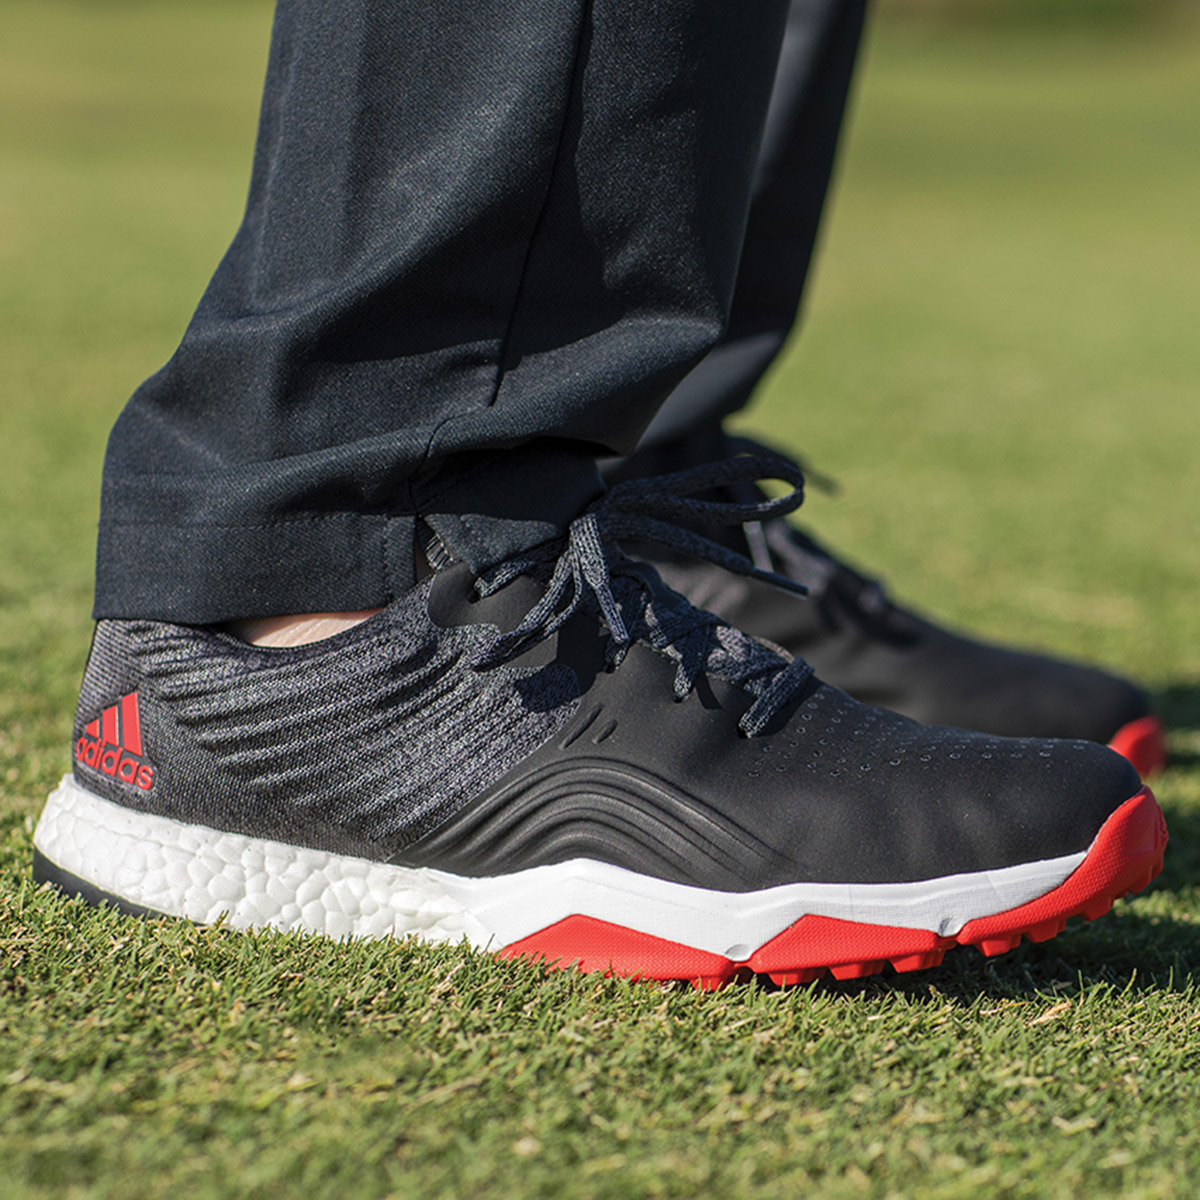 0d5ca01629c adidas Golf Adipower 4Orged S Shoes from american golf